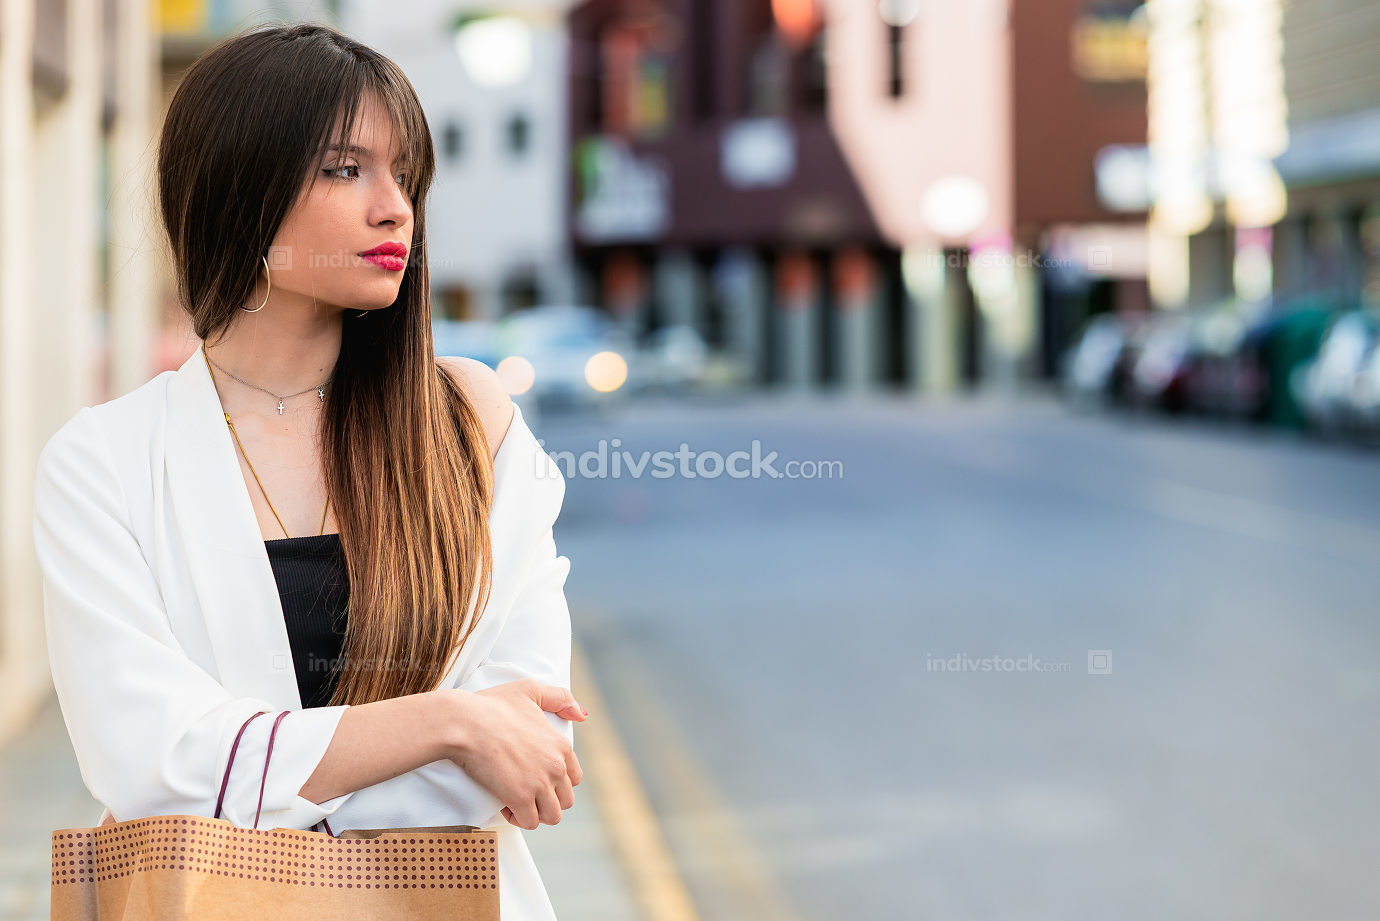 Beautiful young woman waiting in the street with copy space for